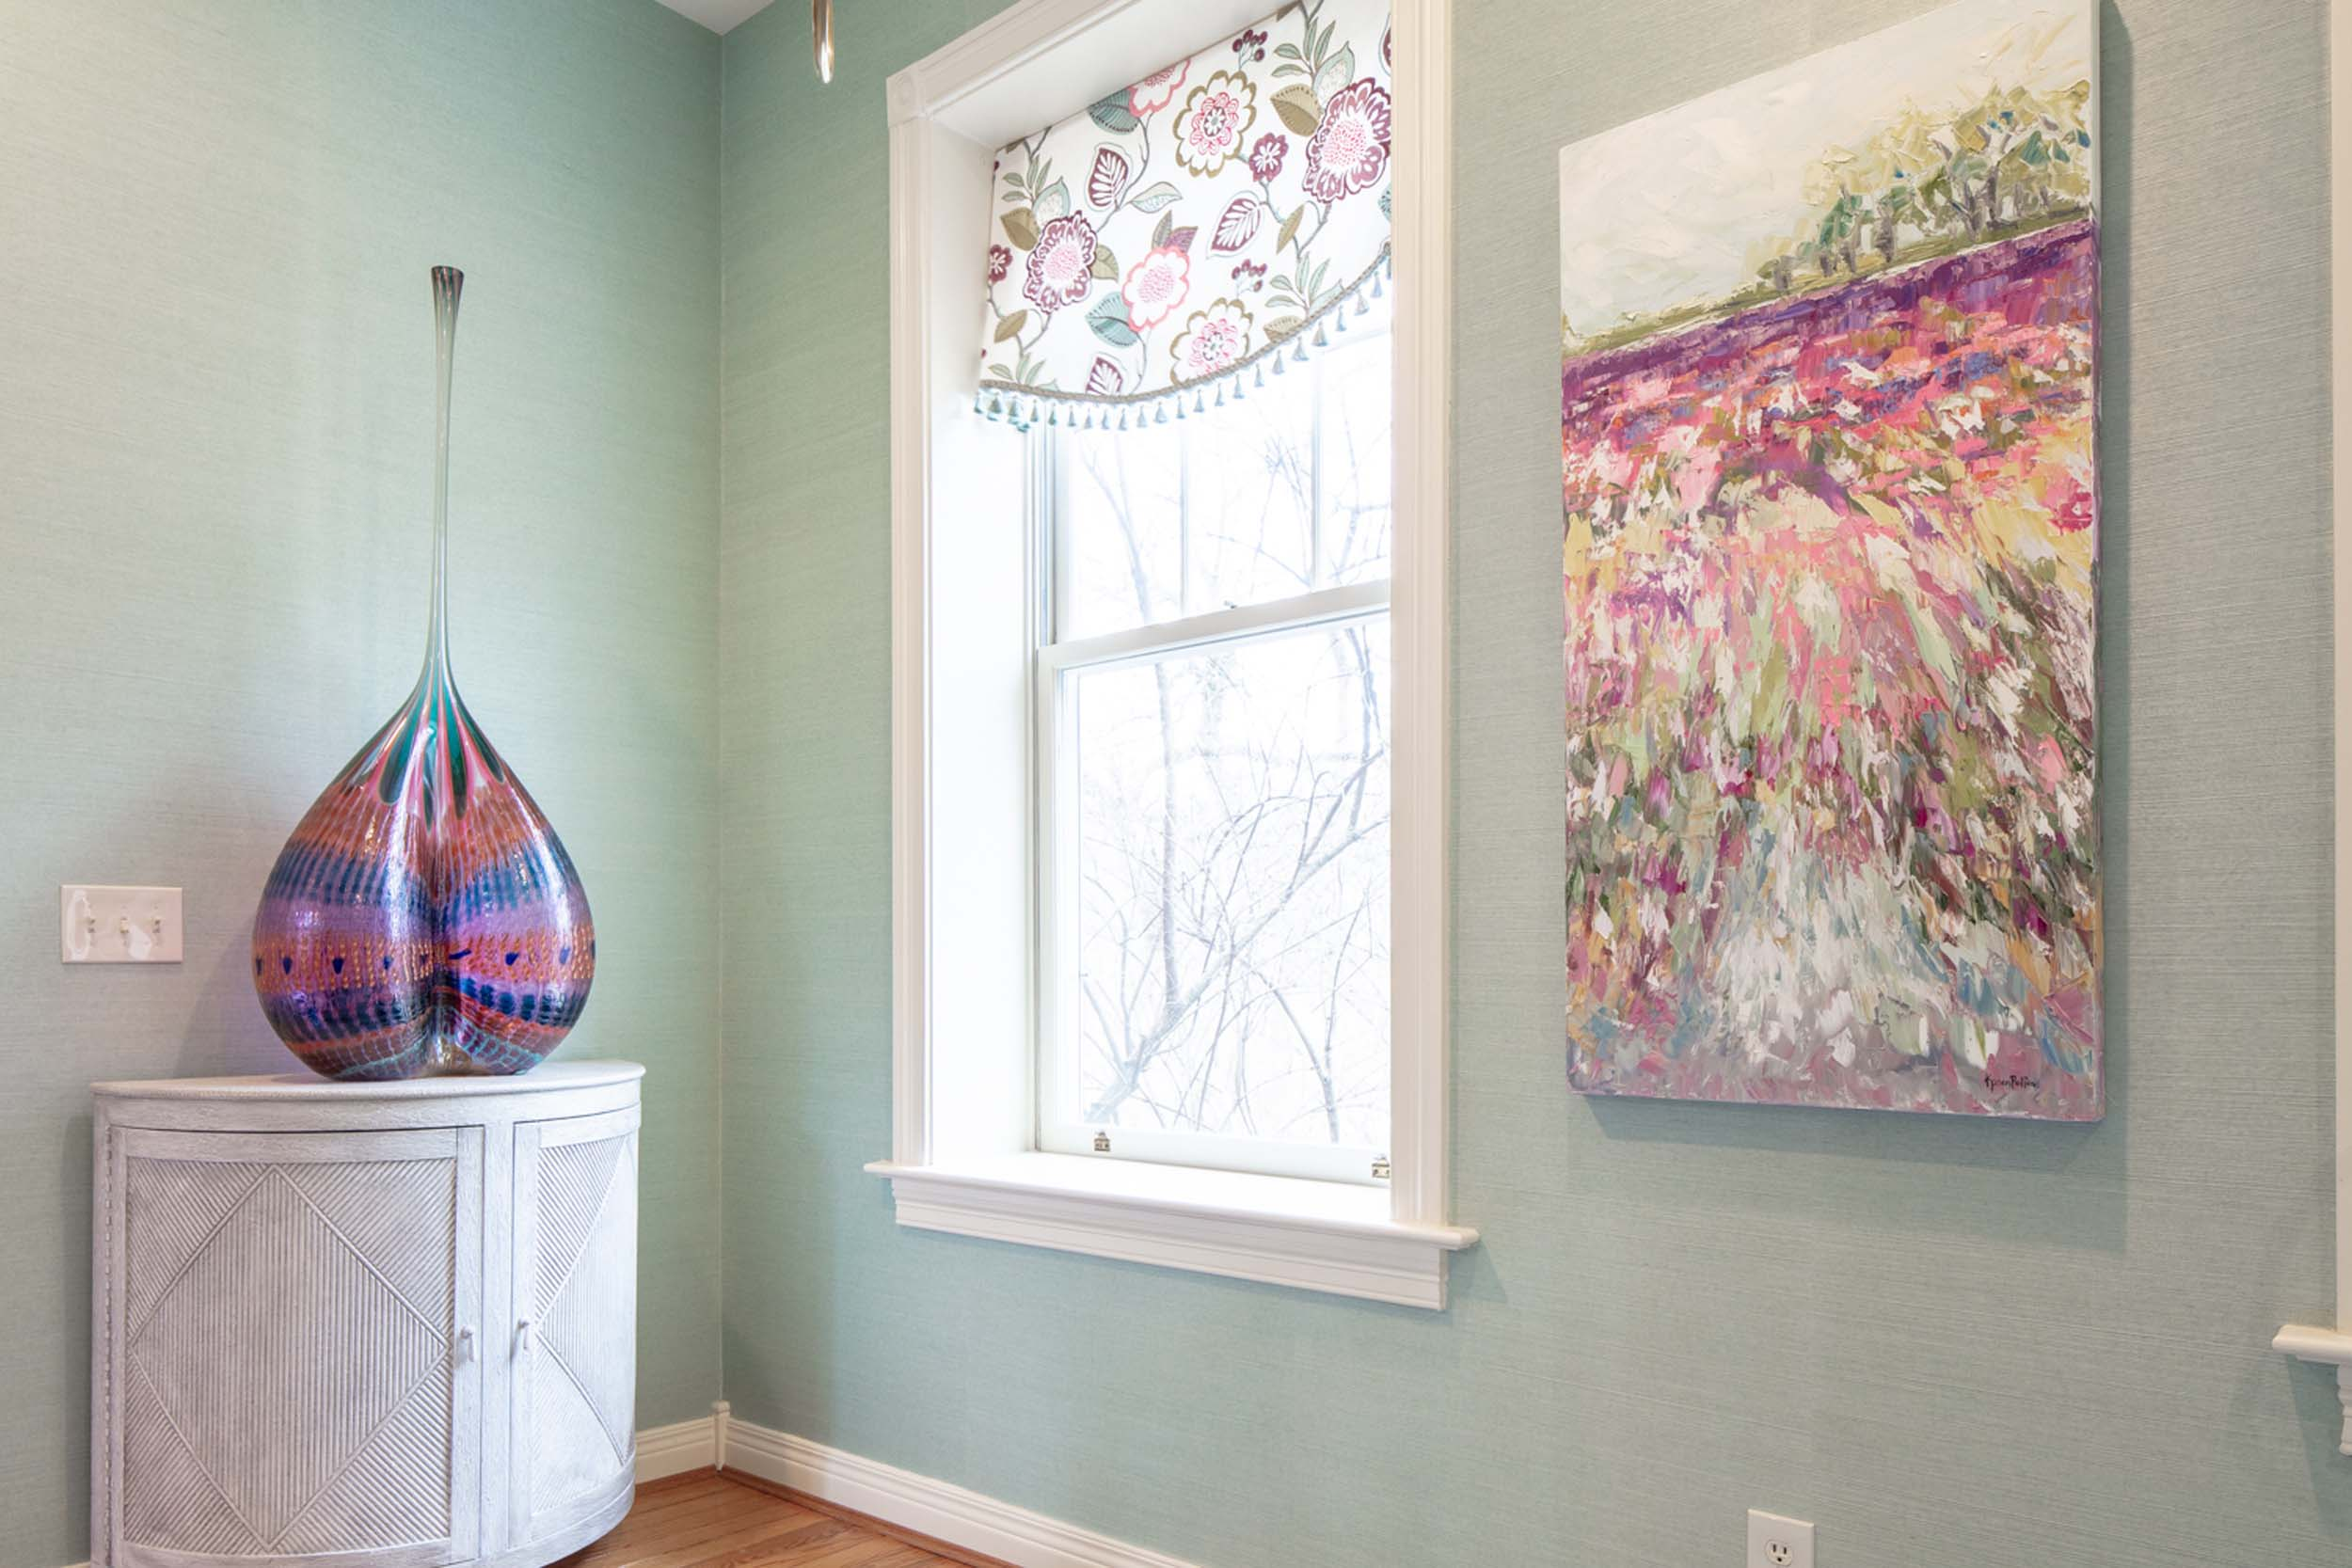 Mint green room with large window and artwork on the wall